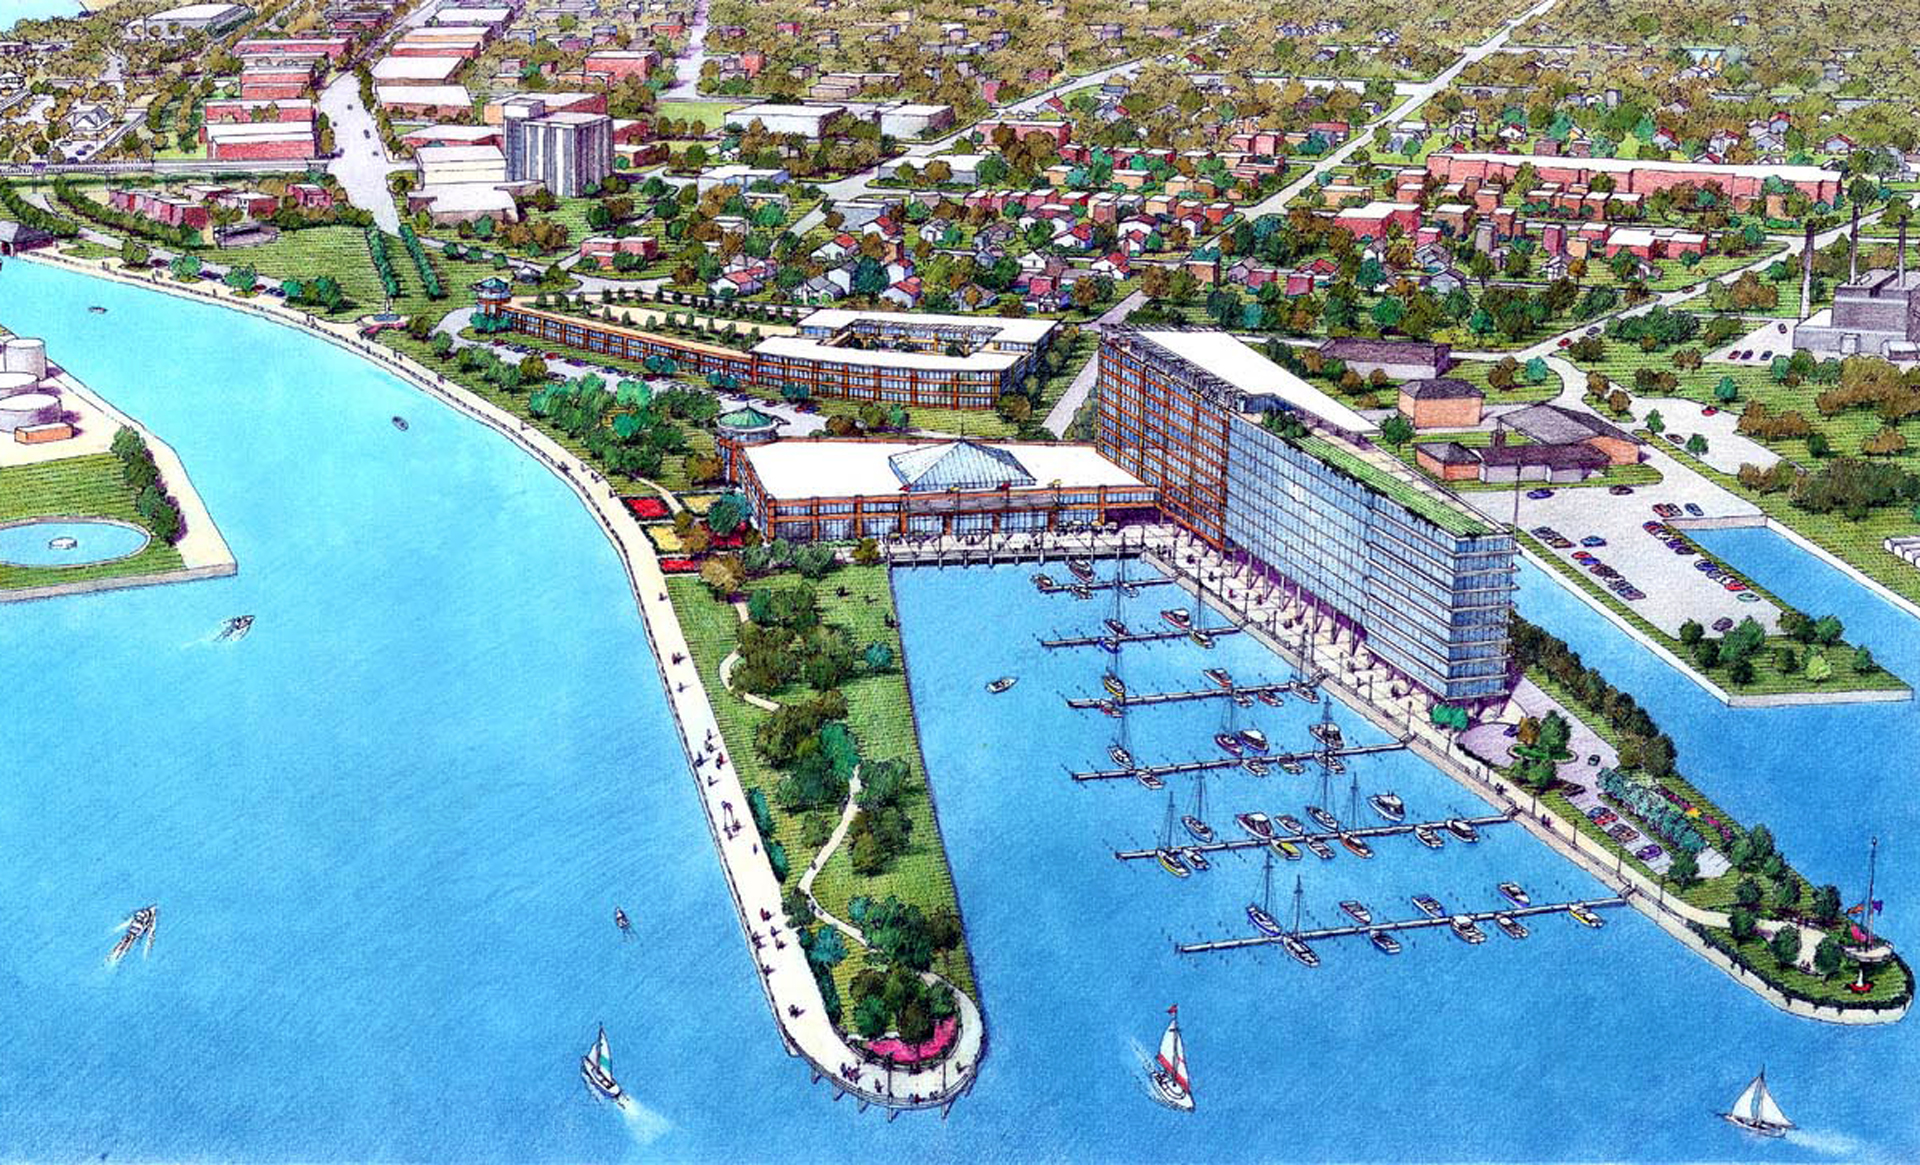 Lorain_Waterfront_Re-Development_Concept_1920_x_1165